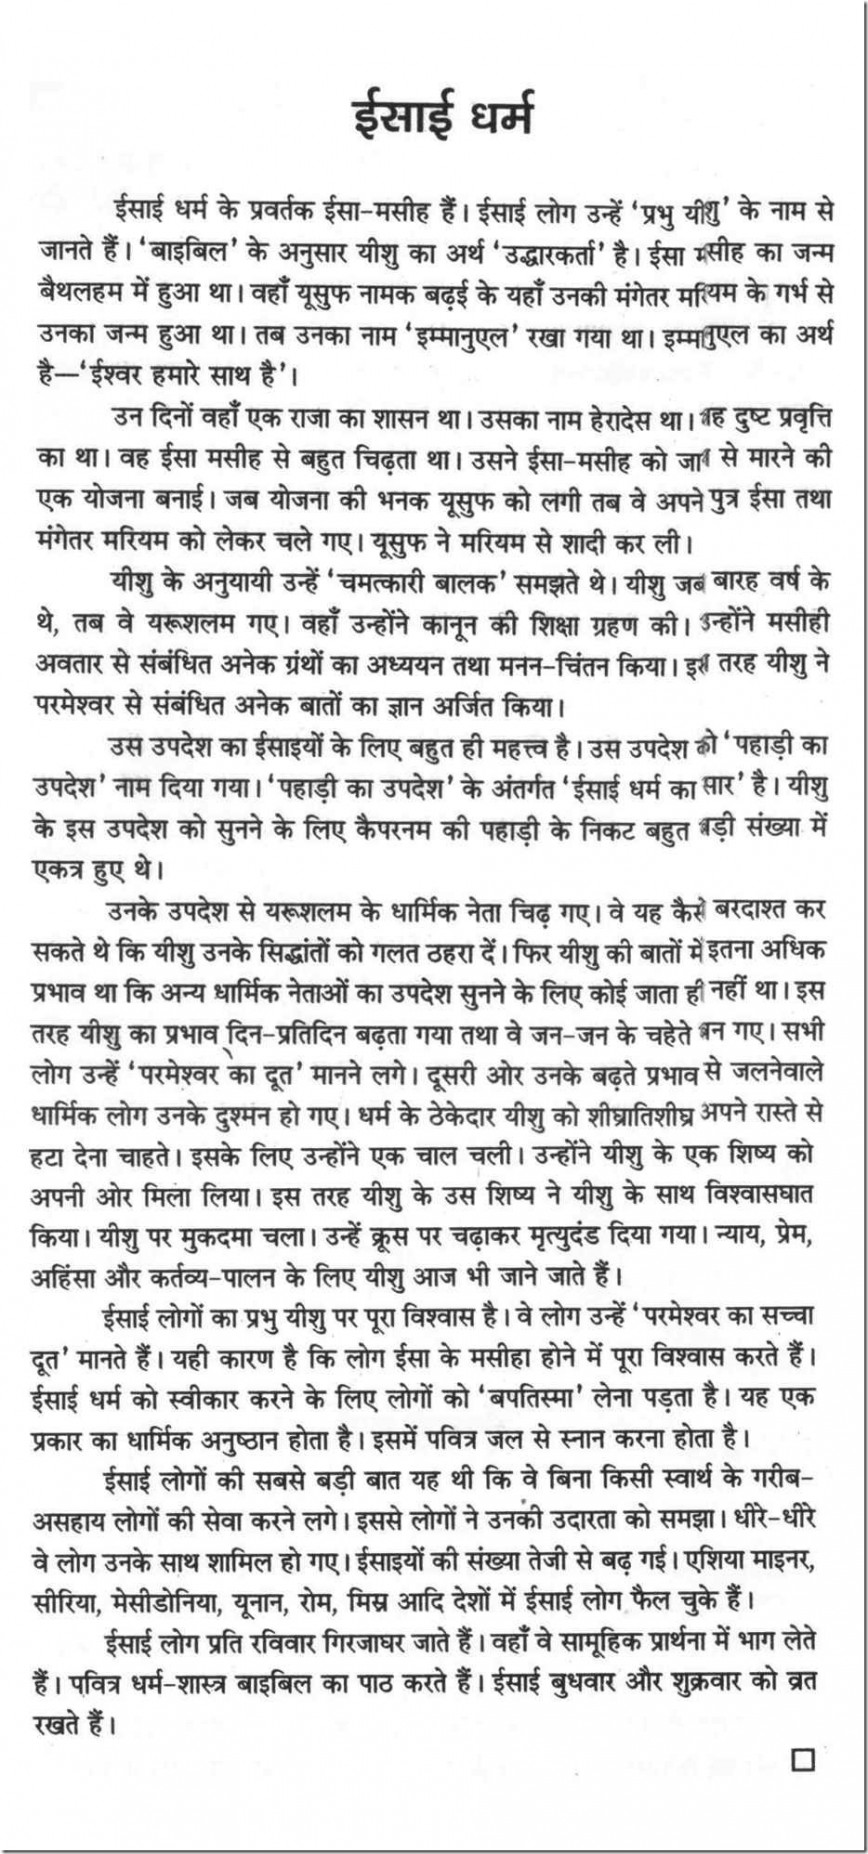 006 Helping Others Essay Example 10048 Thumb Wondrous For Class 2 On In Hindi Language